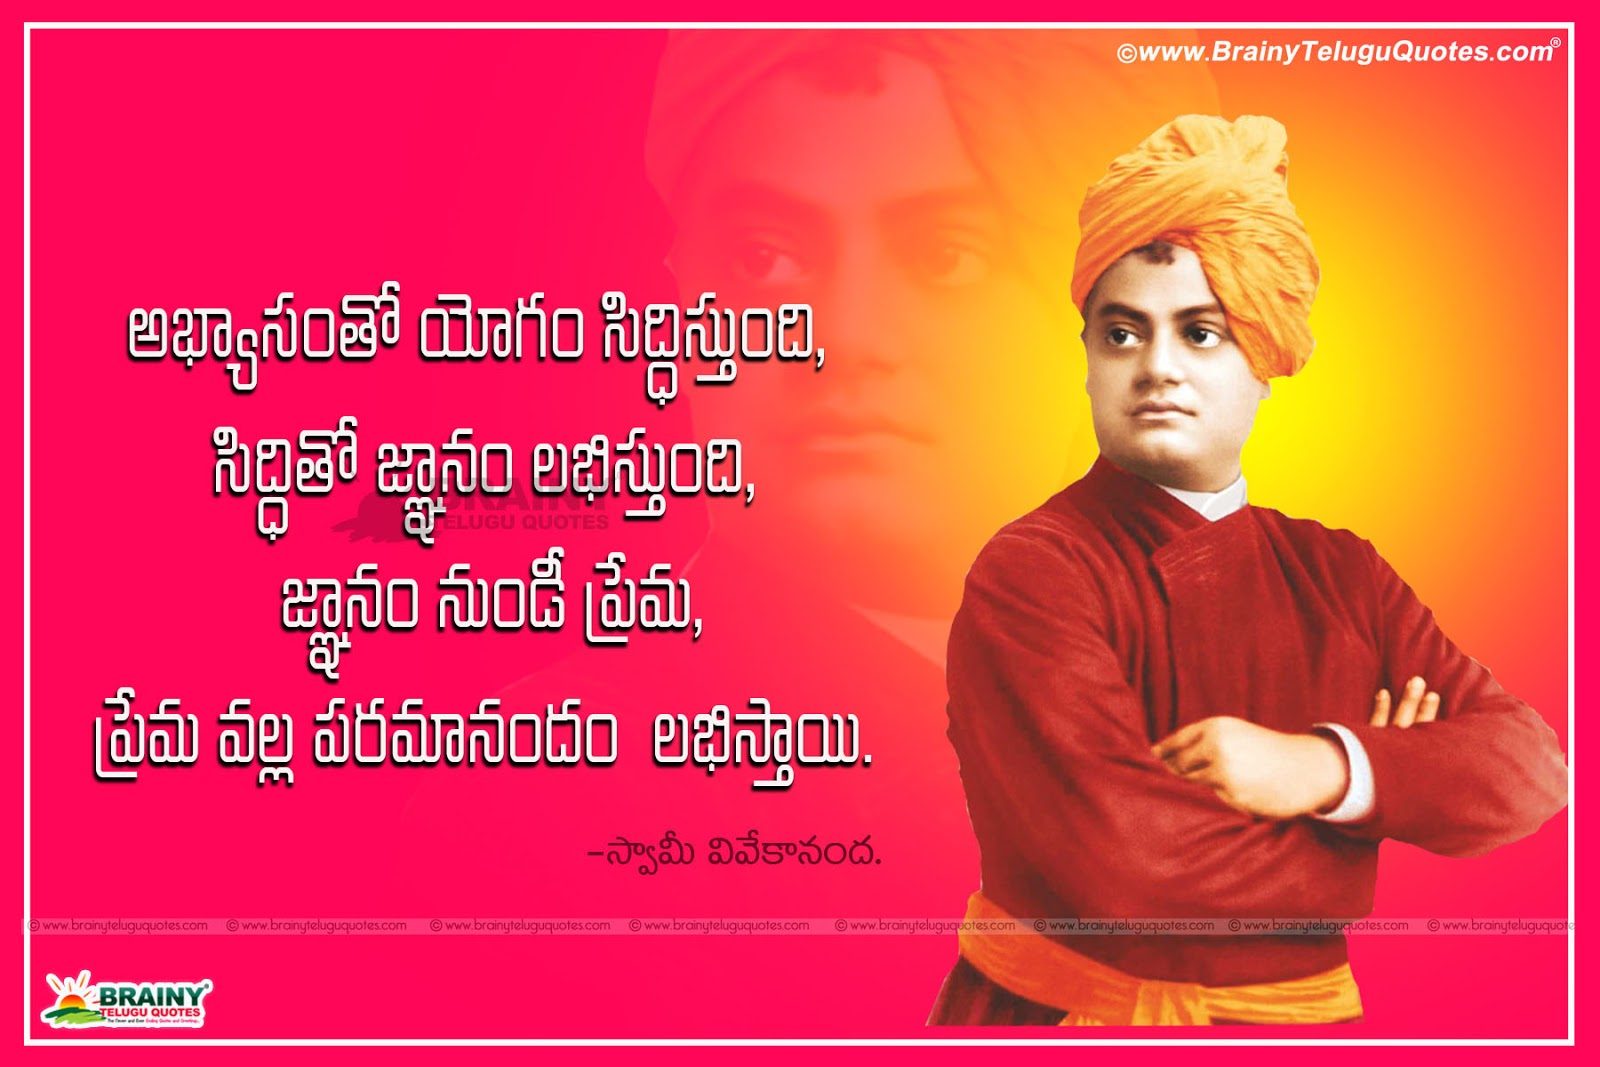 swami vivekananda quotes quotesgram. inspirational quotes ...